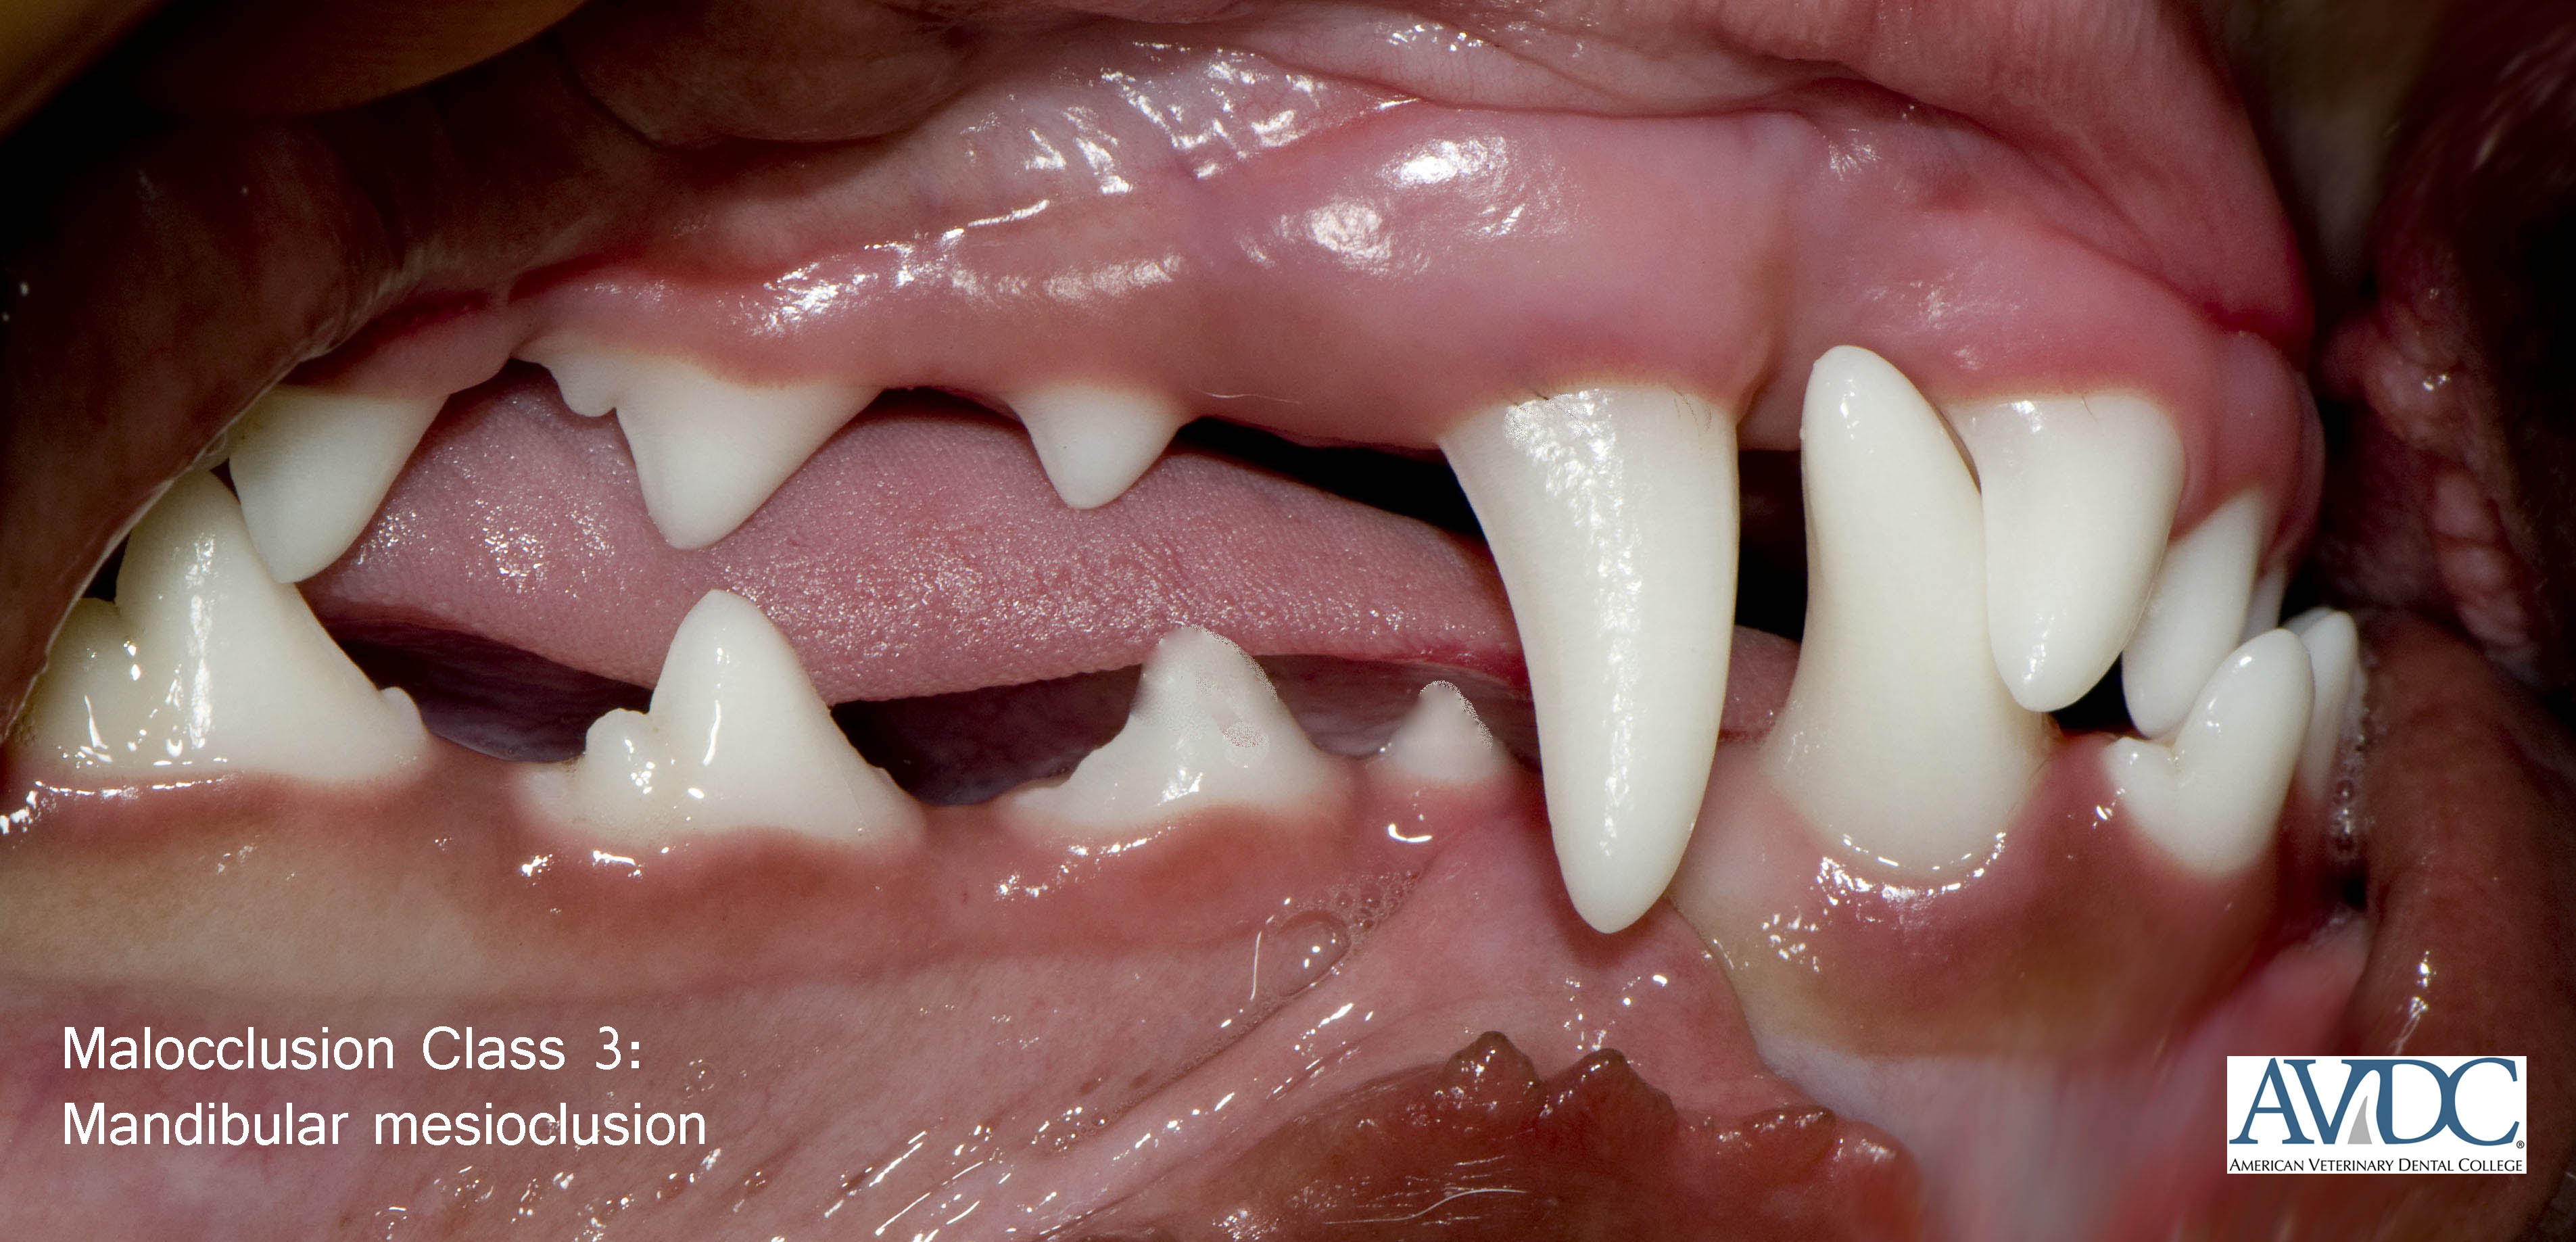 Mandibular mesioclusion %28class 3%29 buccal - Malocclusions (misaligned teeth)